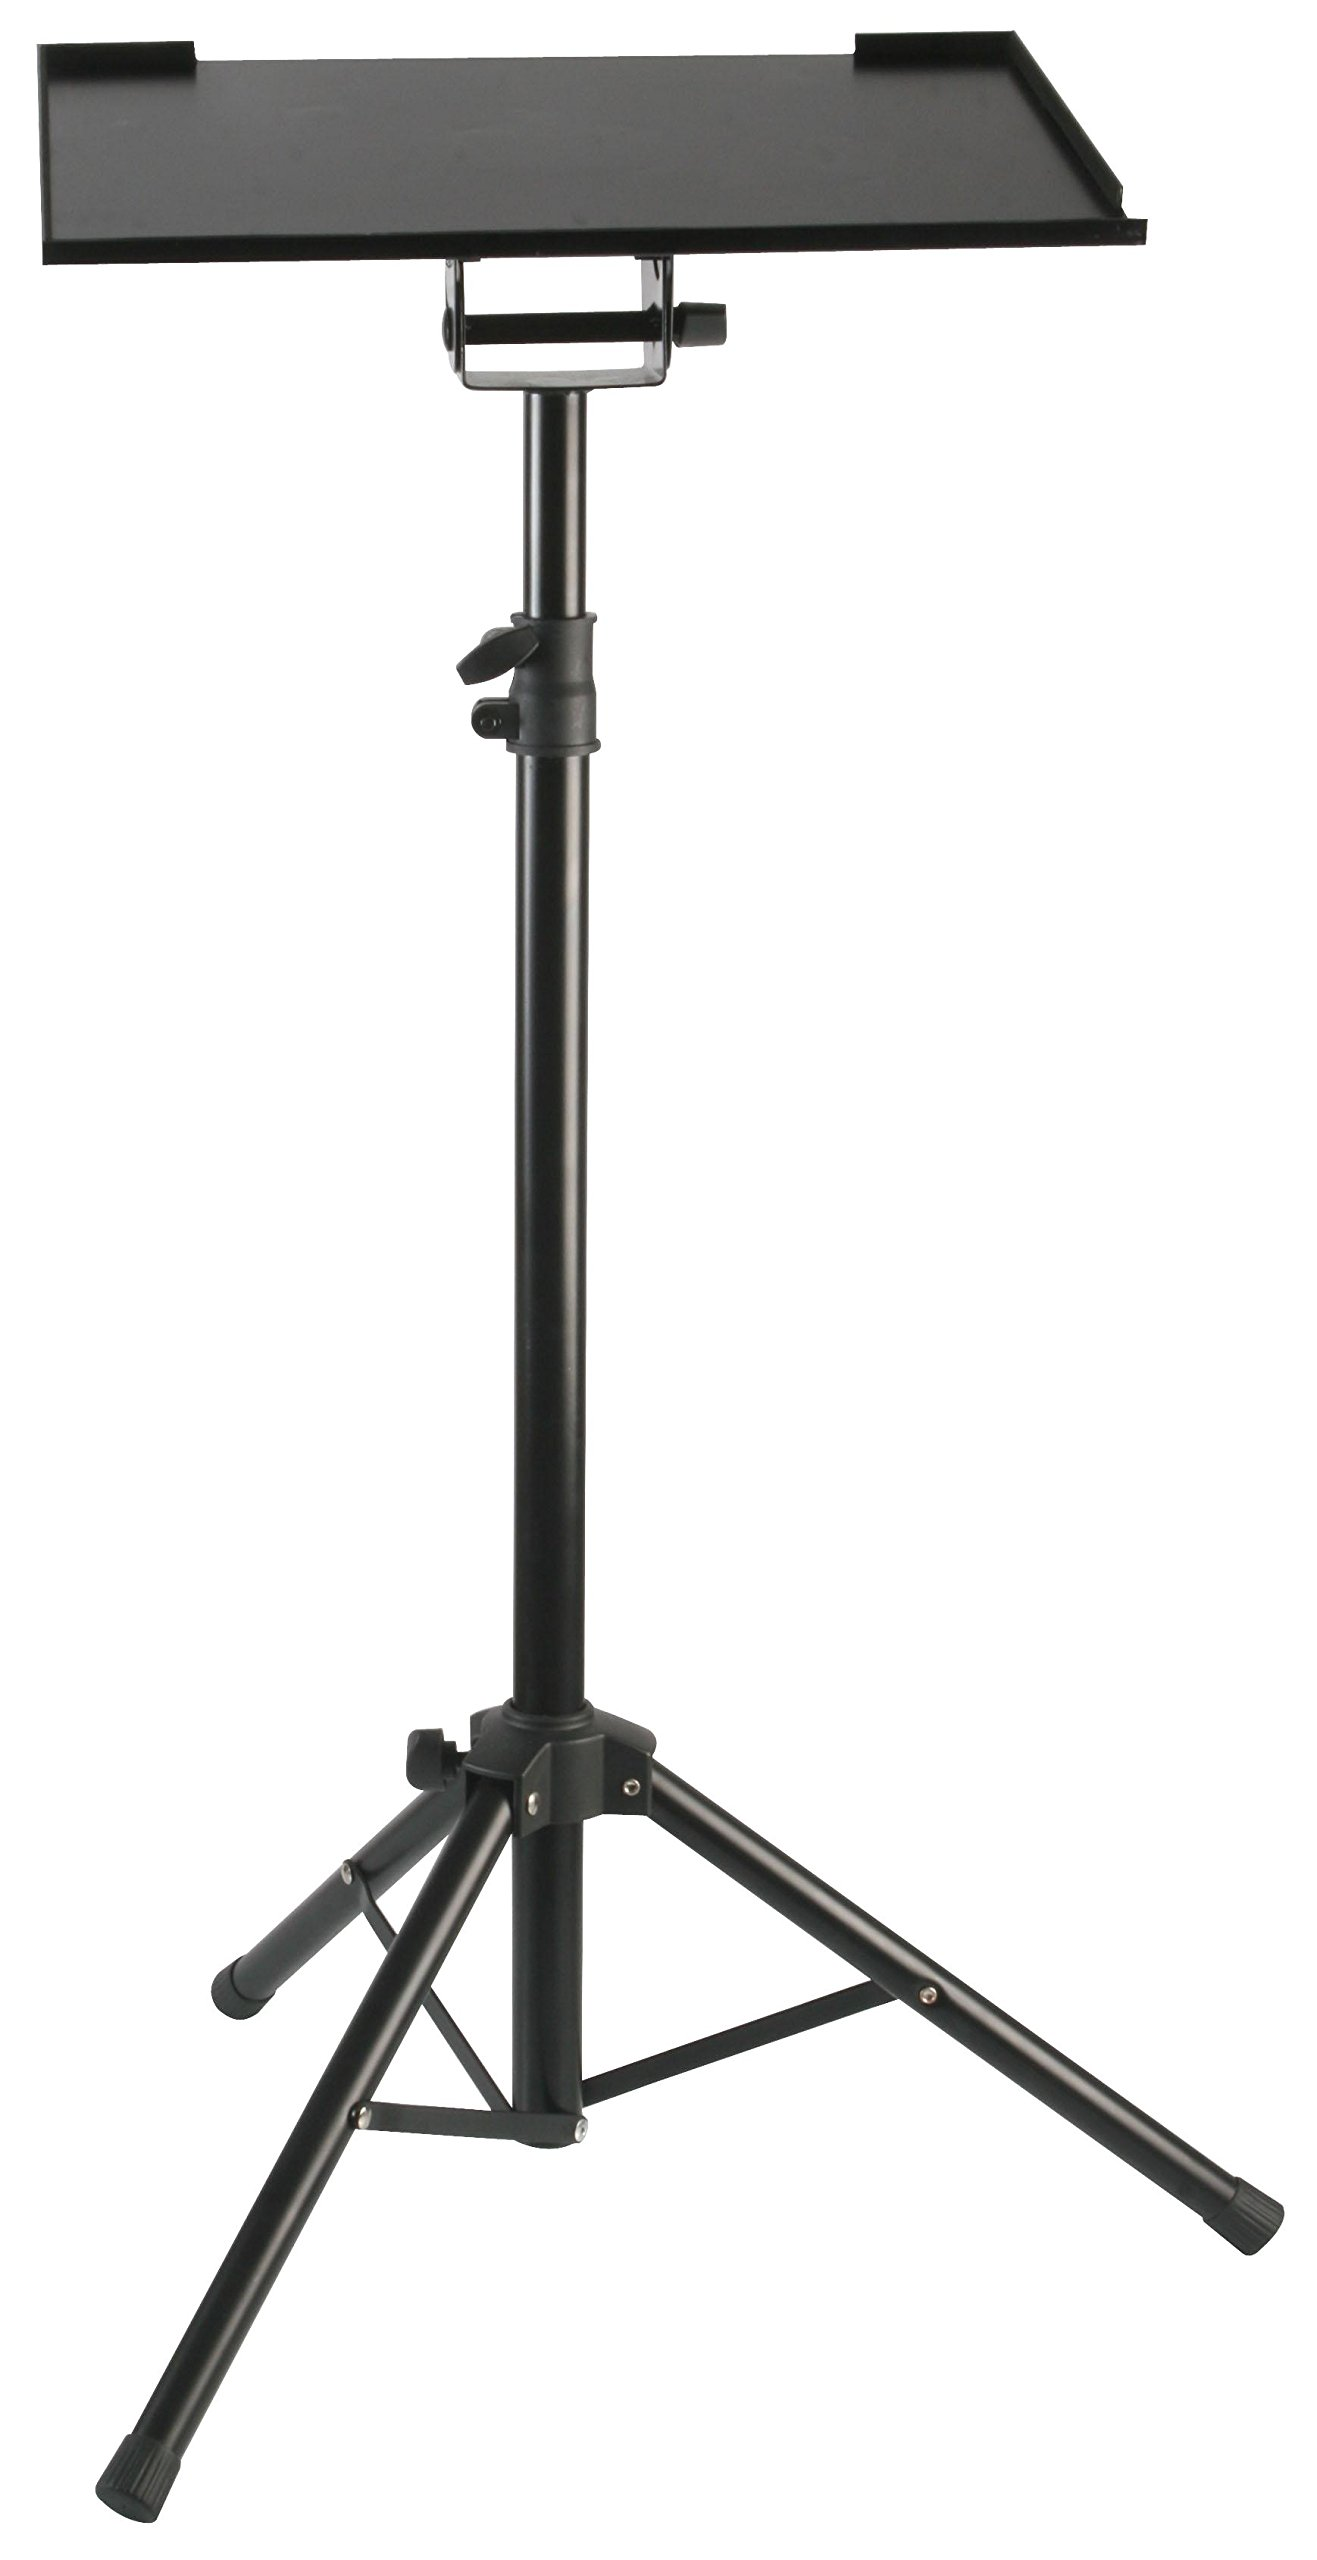 Vococal A 34x24cm Universal Metal Tray Stand Platen Platform Holder for 3//8inch Tripod Projectors Monitors Laptops